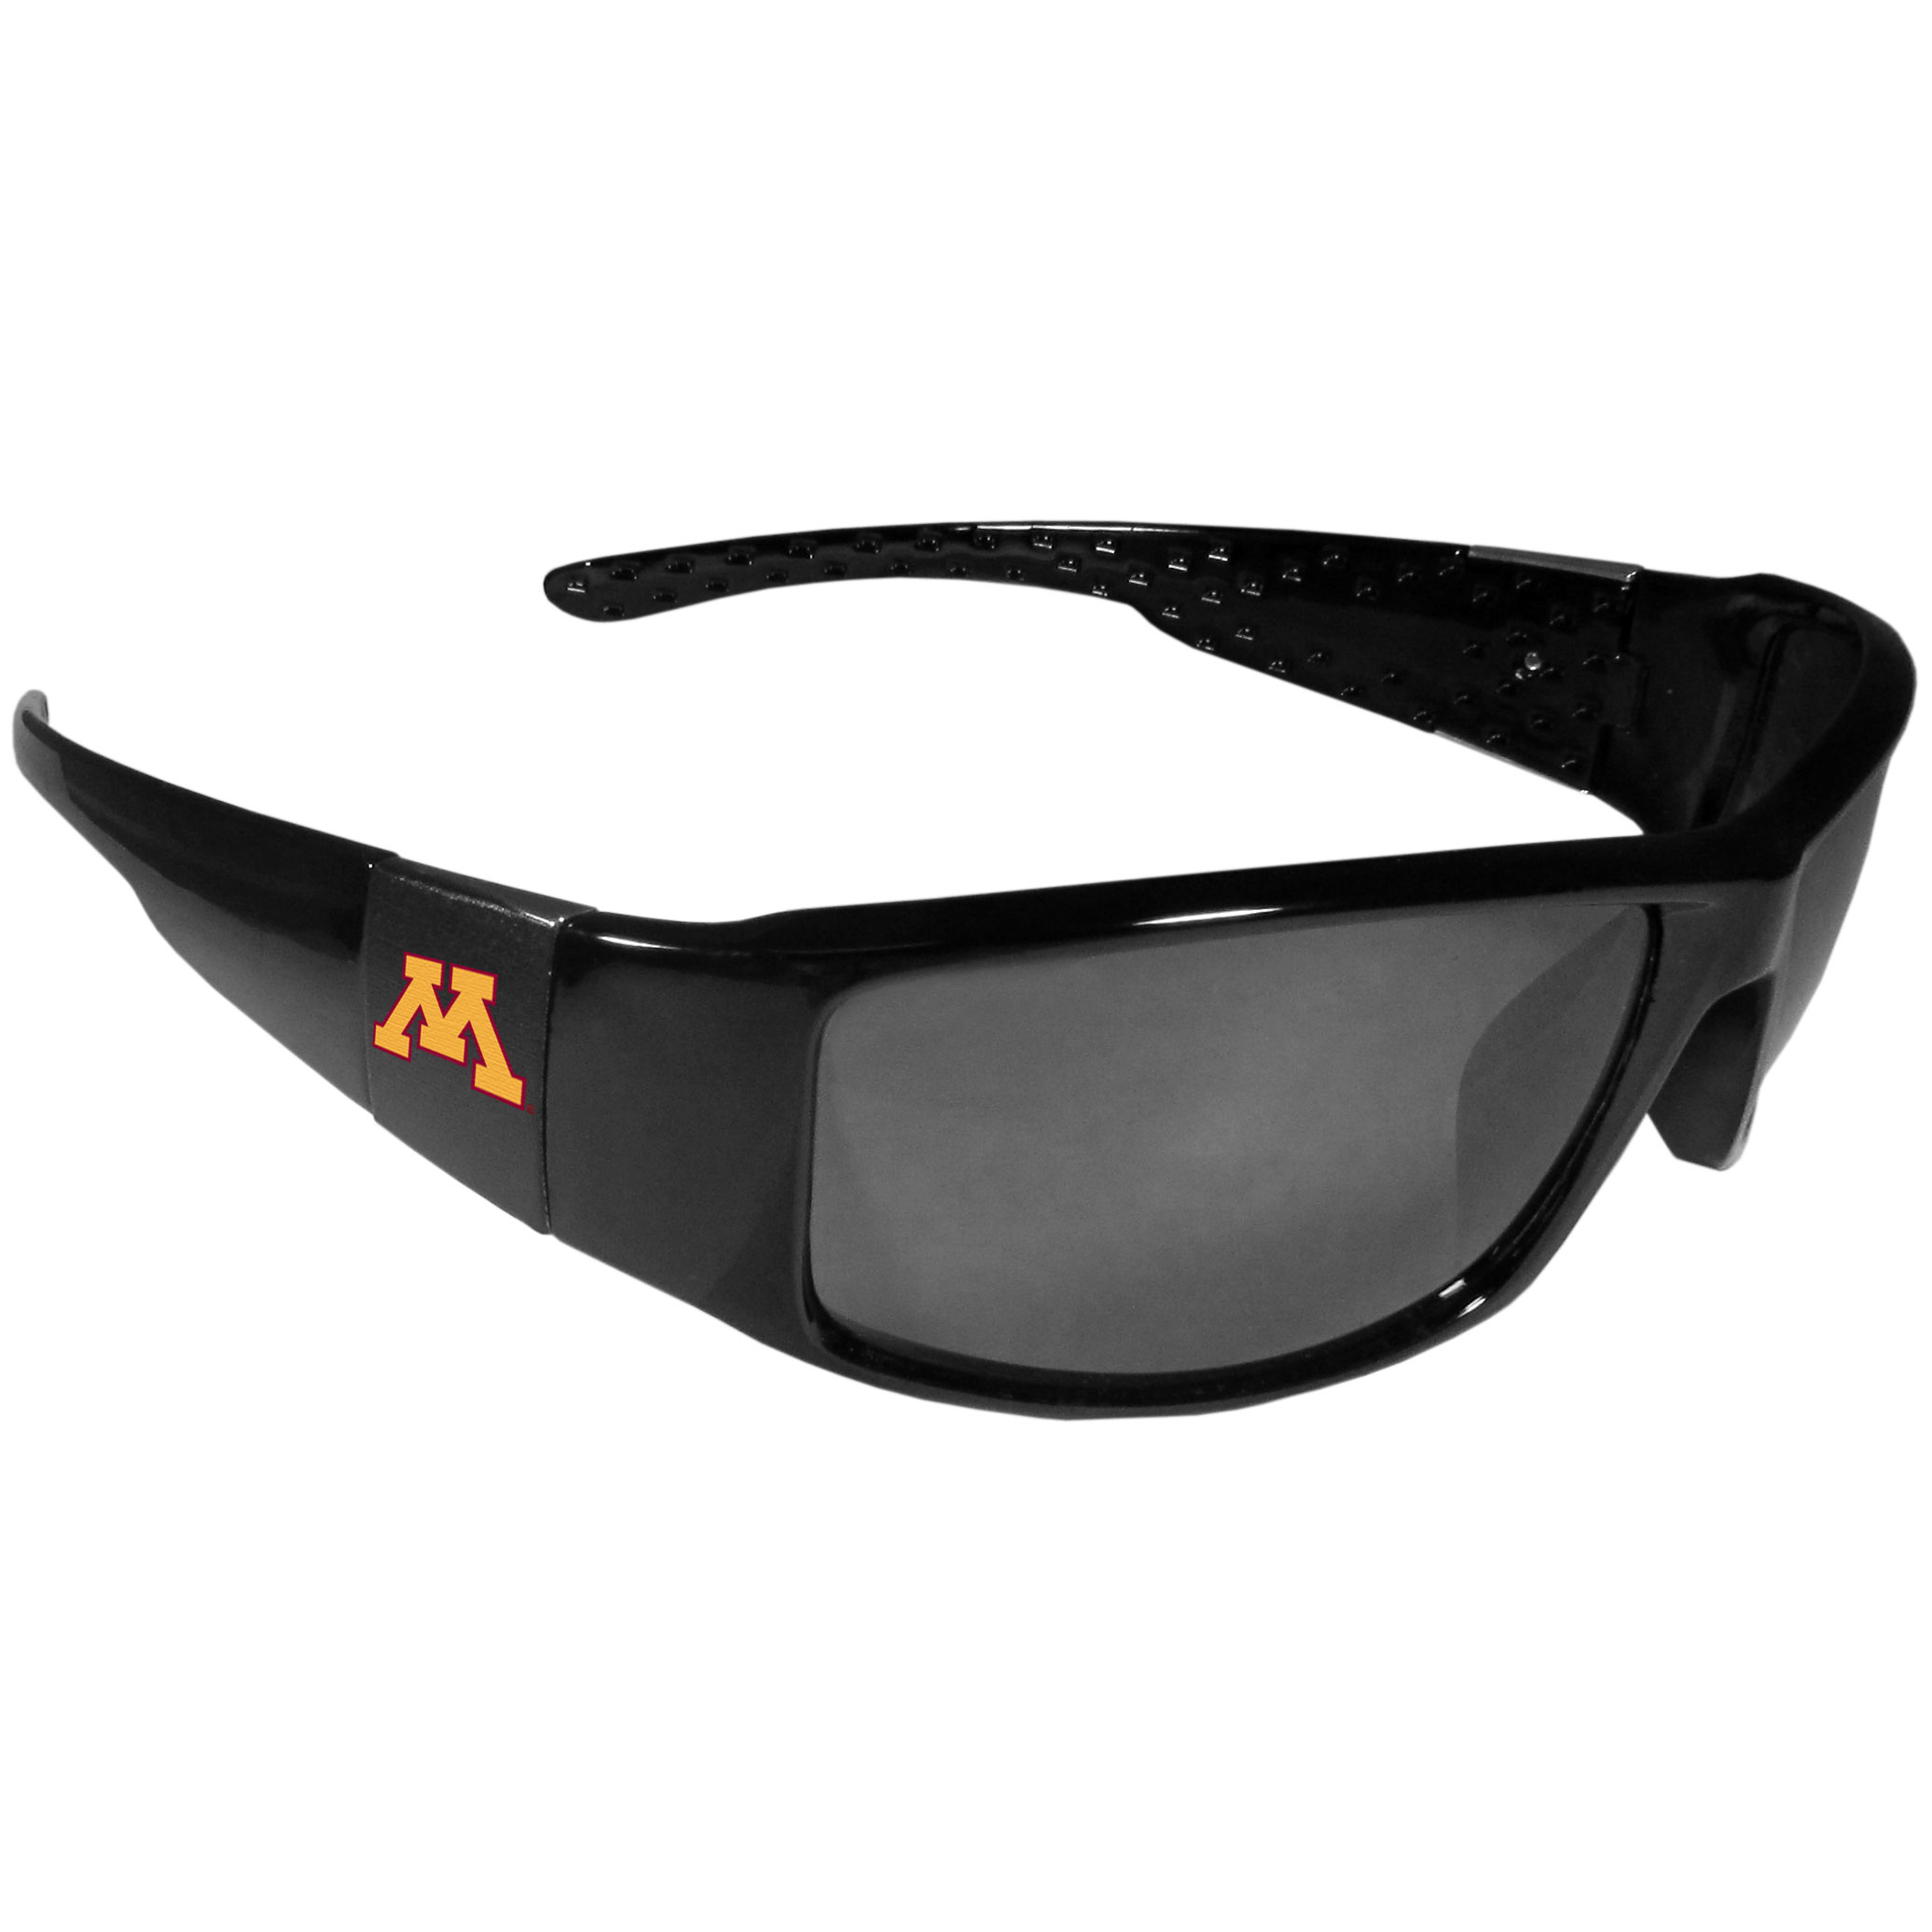 Minnesota Golden Gophers Black Wrap Sunglasses - These designer inspired frames have a sleek look in all black with  Minnesota Golden Gophers shields on each arm with a printed logo. The shades are perfect for any outdoor activity like; golfing, driving, hiking, fishing or cheering on the team at a tailgating event or at a home game day BBQ with a lens rating of 100% UVA/UVB for maximum UV protection. The high-quality frames are as durable as they are fashionable and with their classic look they are the perfect fan accessory that can be worn everyday for every occasion.